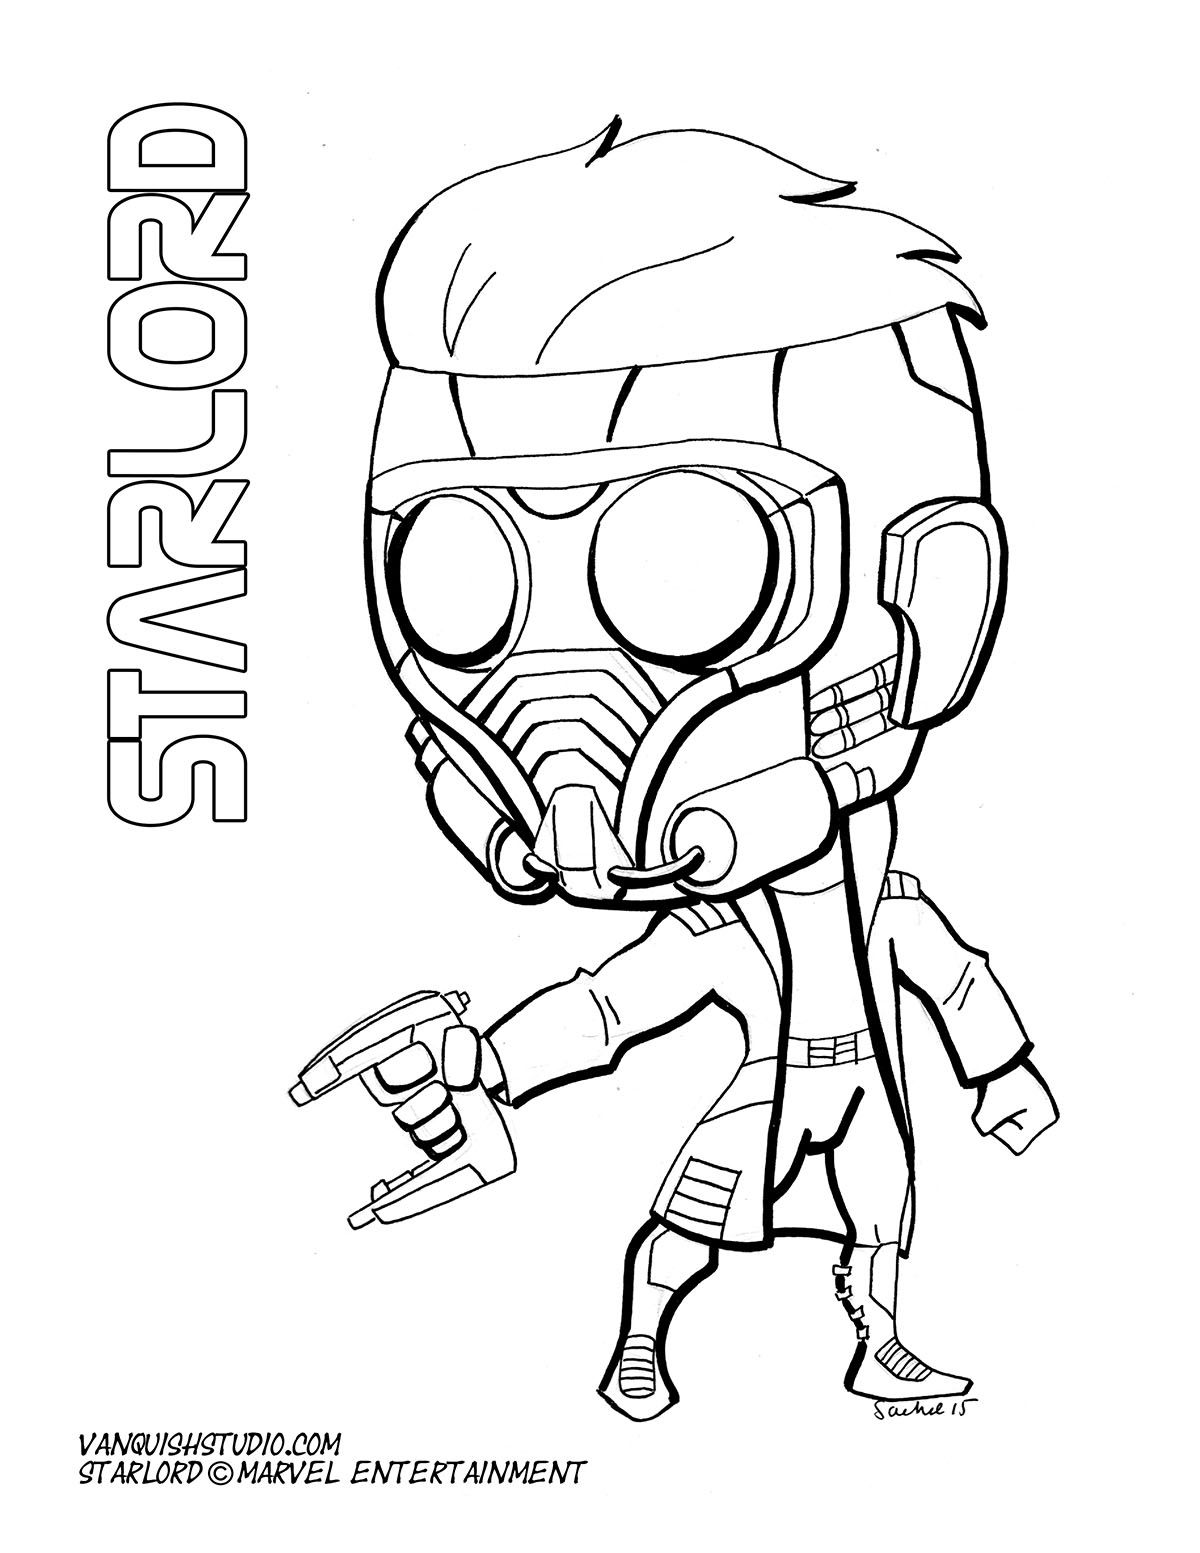 Chibi Fusion Starlord Superhero Coloring Pages Unicorn Coloring Pages Superhero Coloring